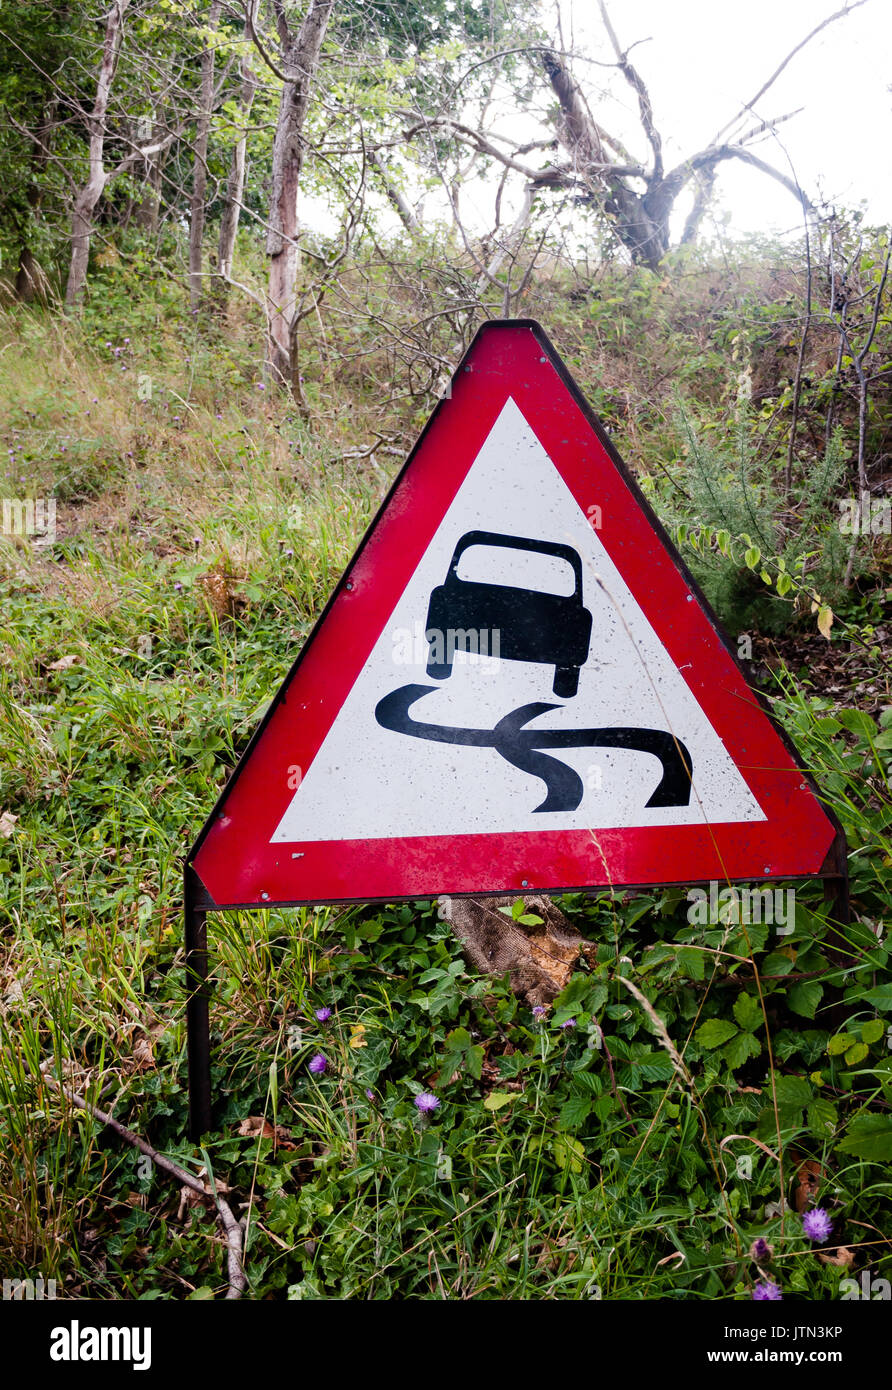 a red triangle driving sign on the side of road on grass; UK - Stock Image